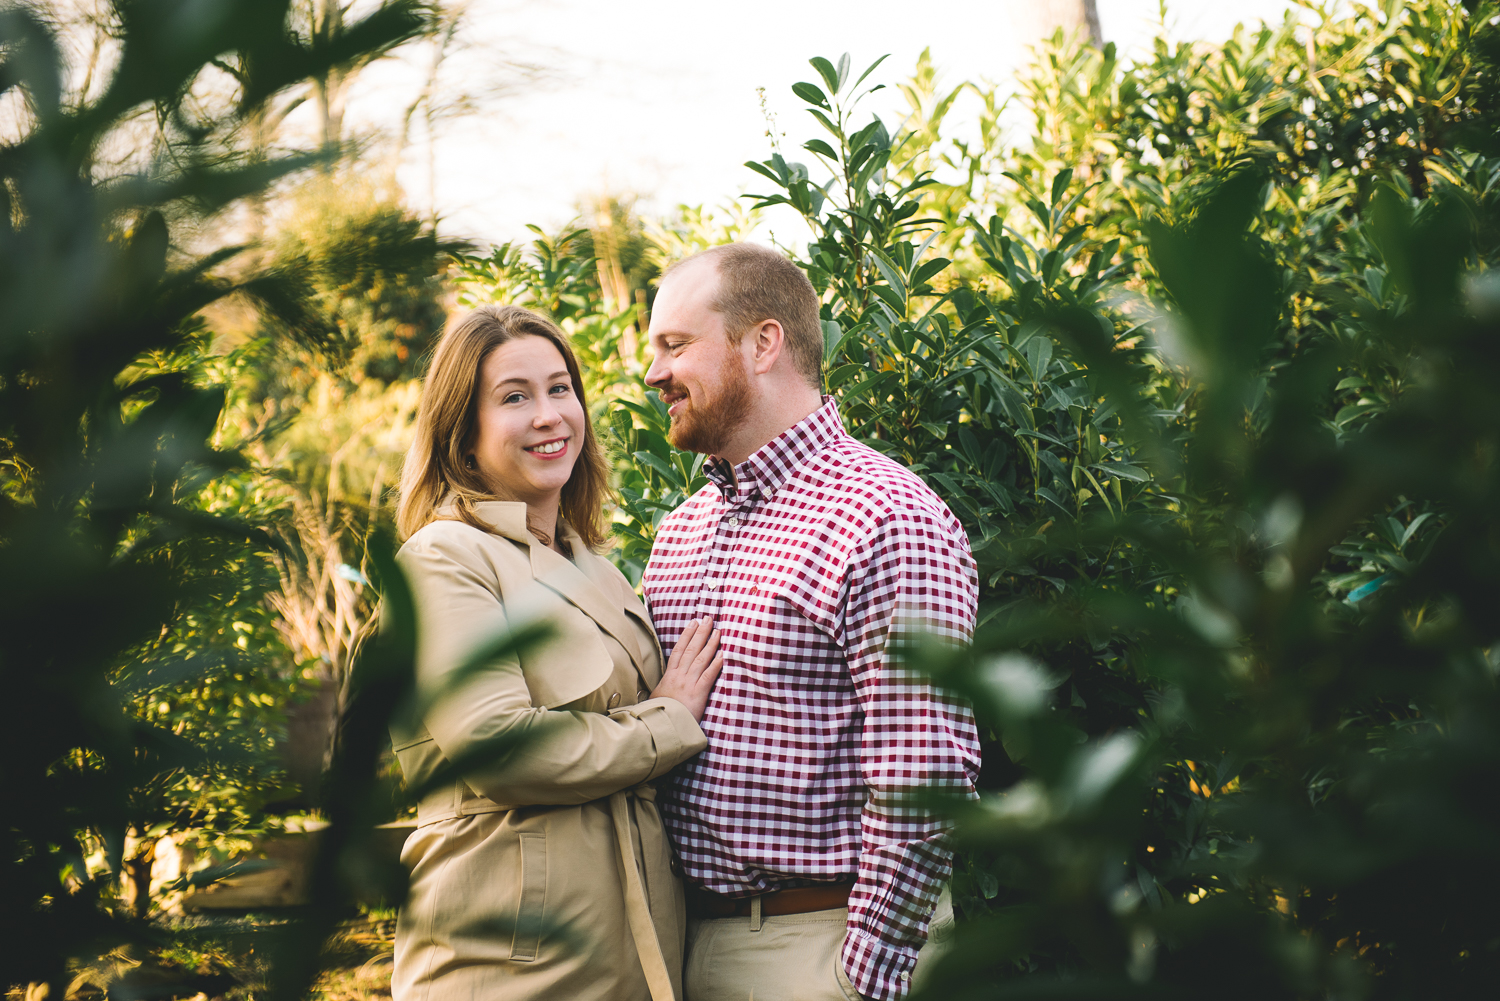 Lansdale-pennsylvania-engagement-photographer-the-rhoads-garden6.jpg